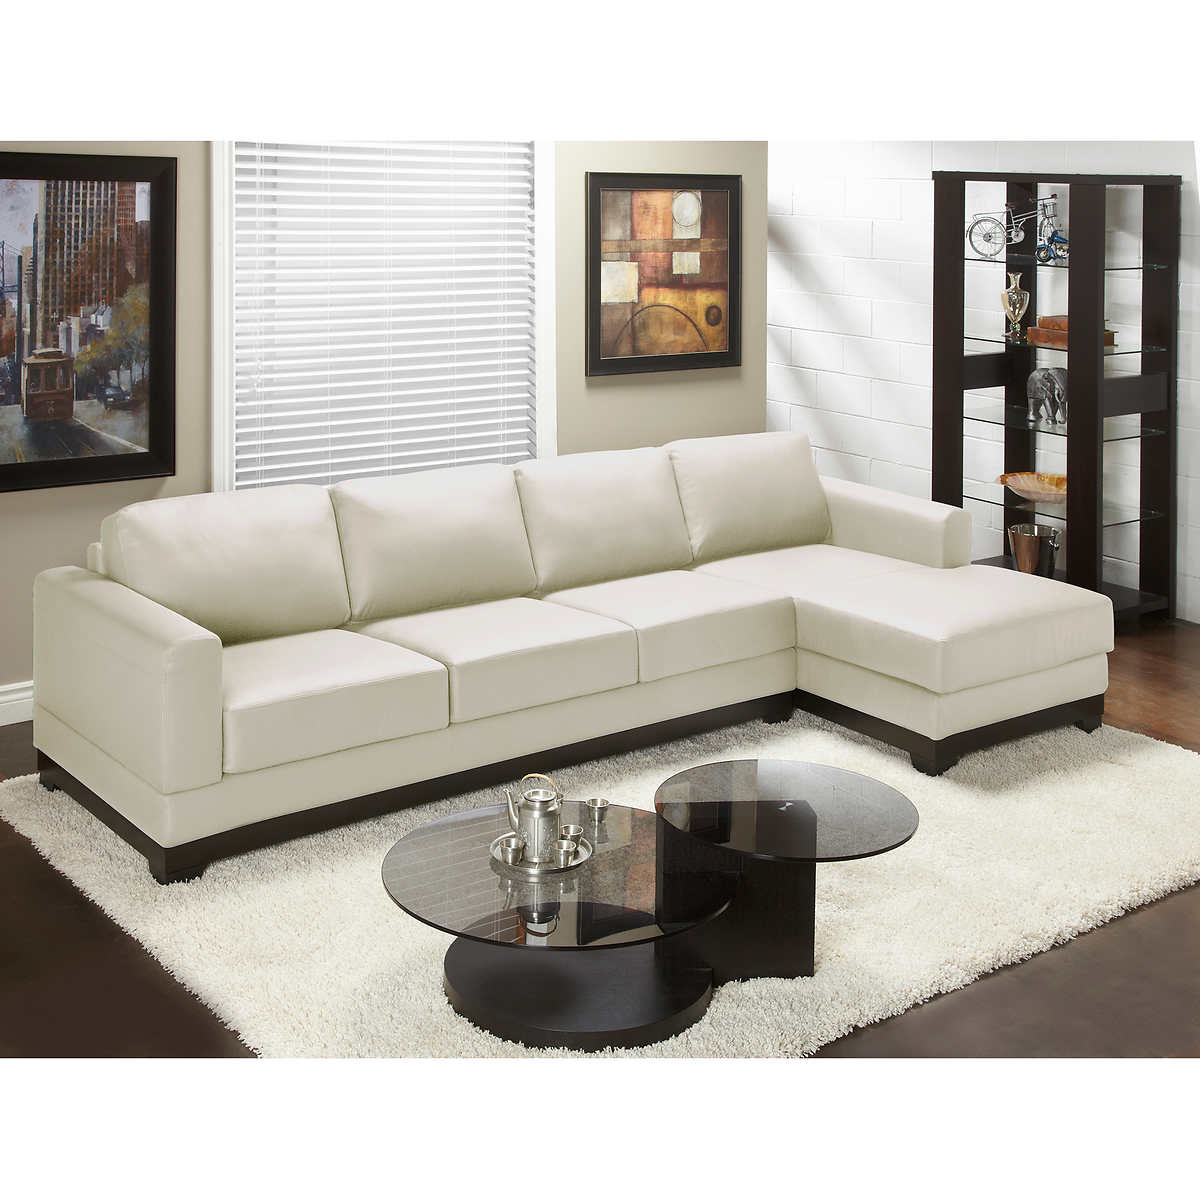 100 condo size sofa best sofas and couches for small spaces